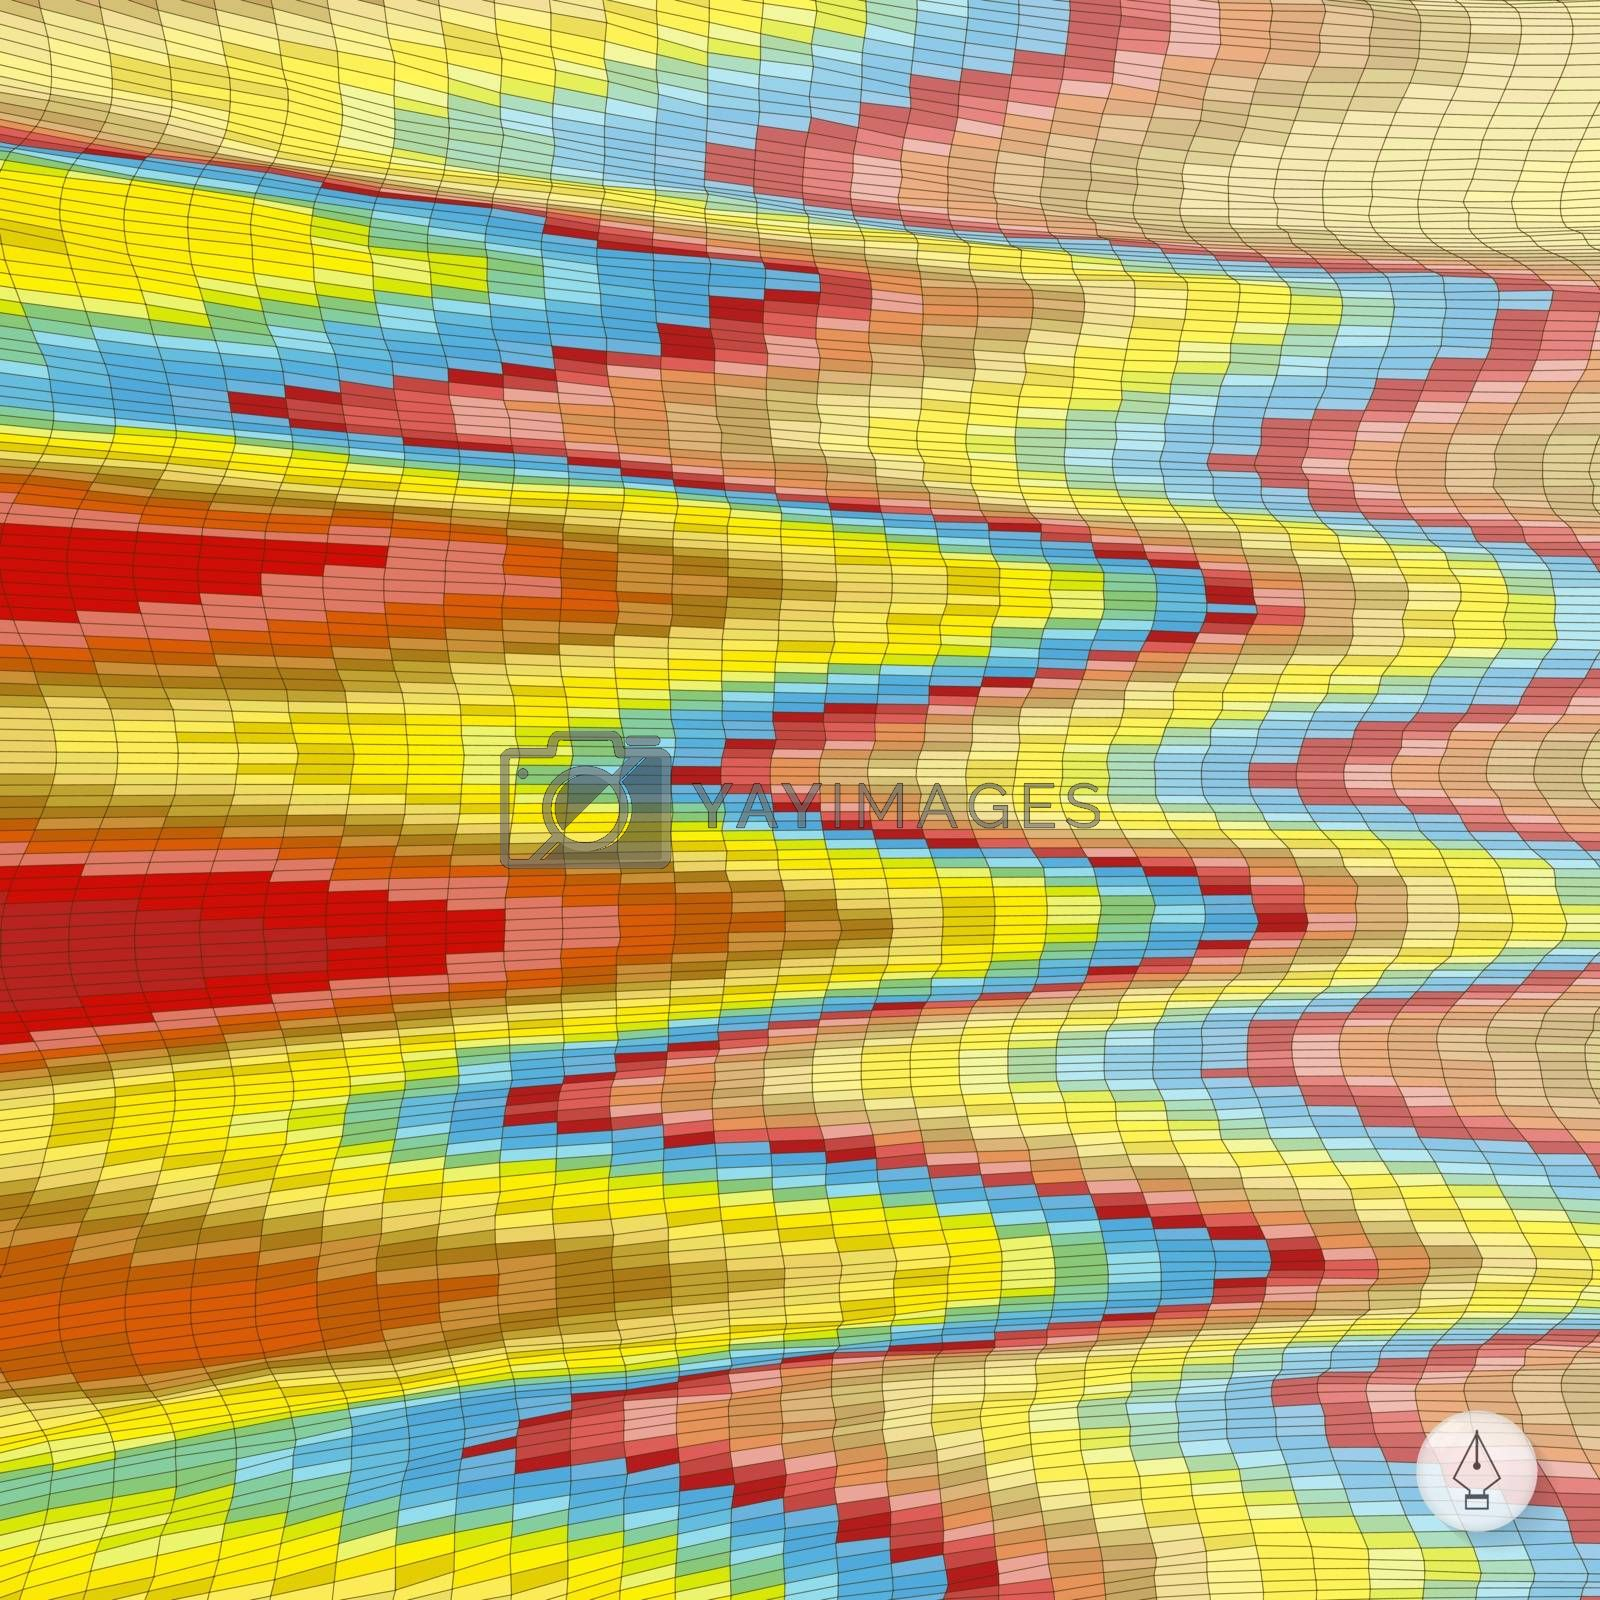 Abstract colorful background. Mosaic. Vector illustration. Can be used for wallpaper, web page background, web banners.